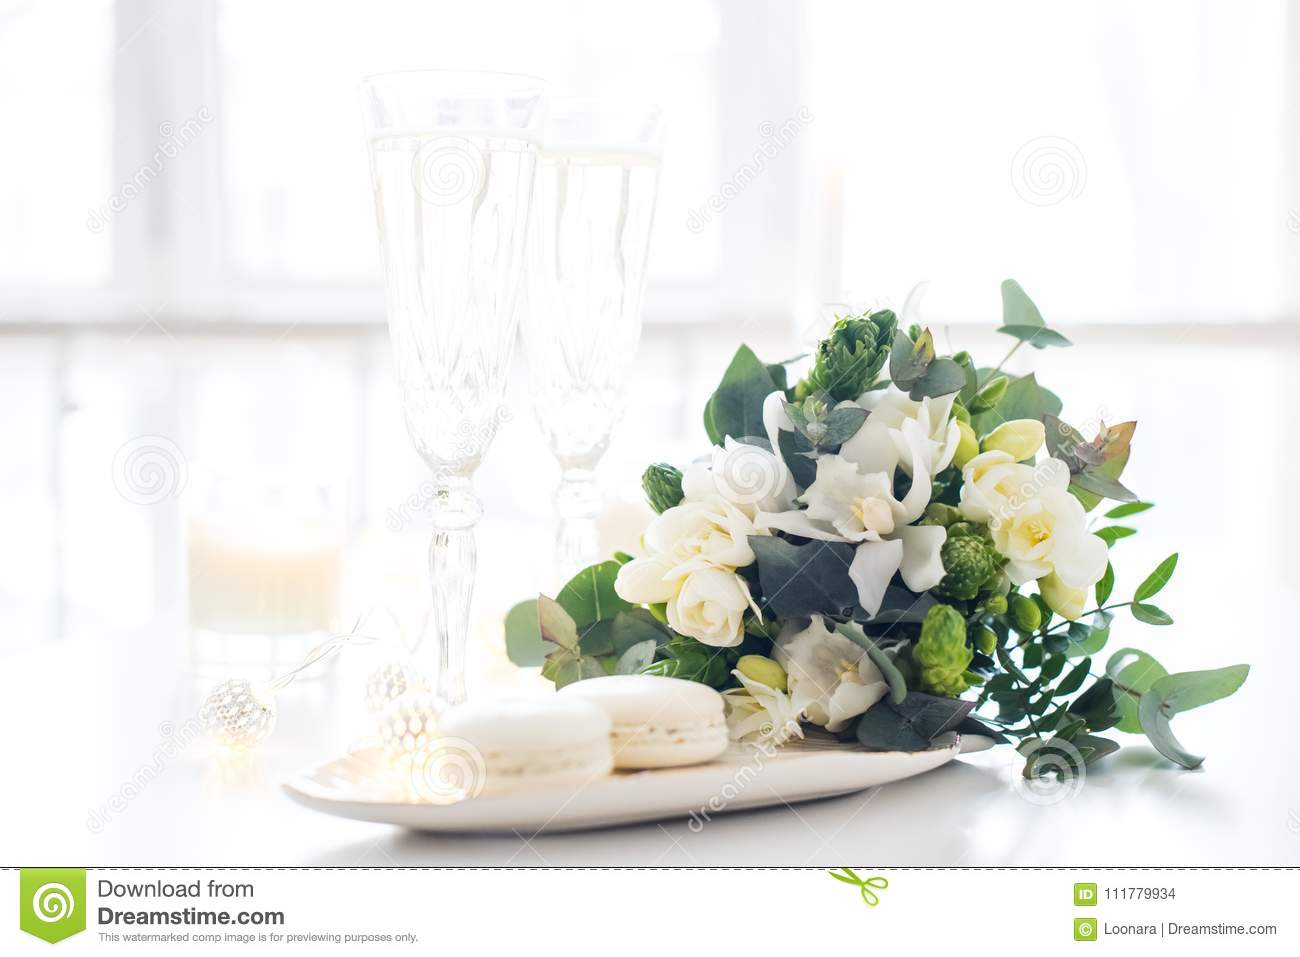 Beautiful wedding decoration with champagne and flowers, elegant